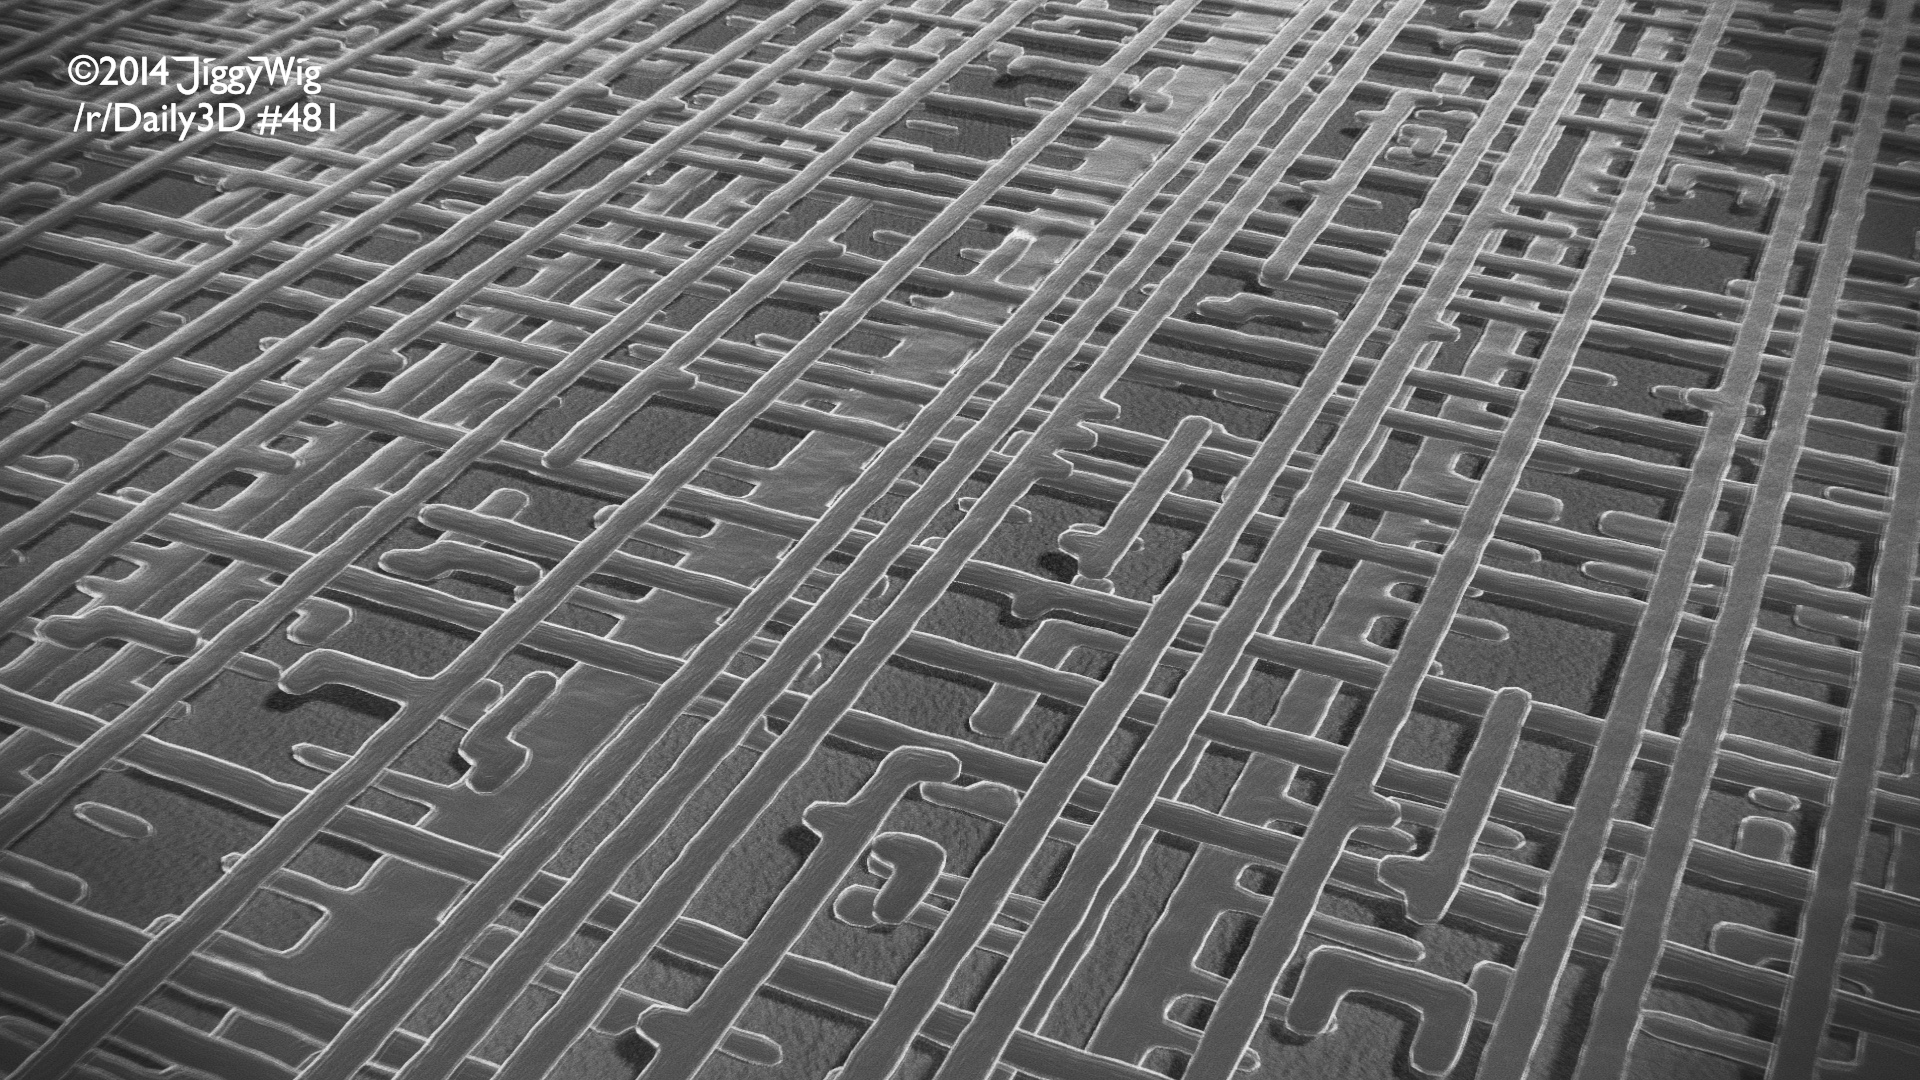 #481 Computer Chip, but in monochrome